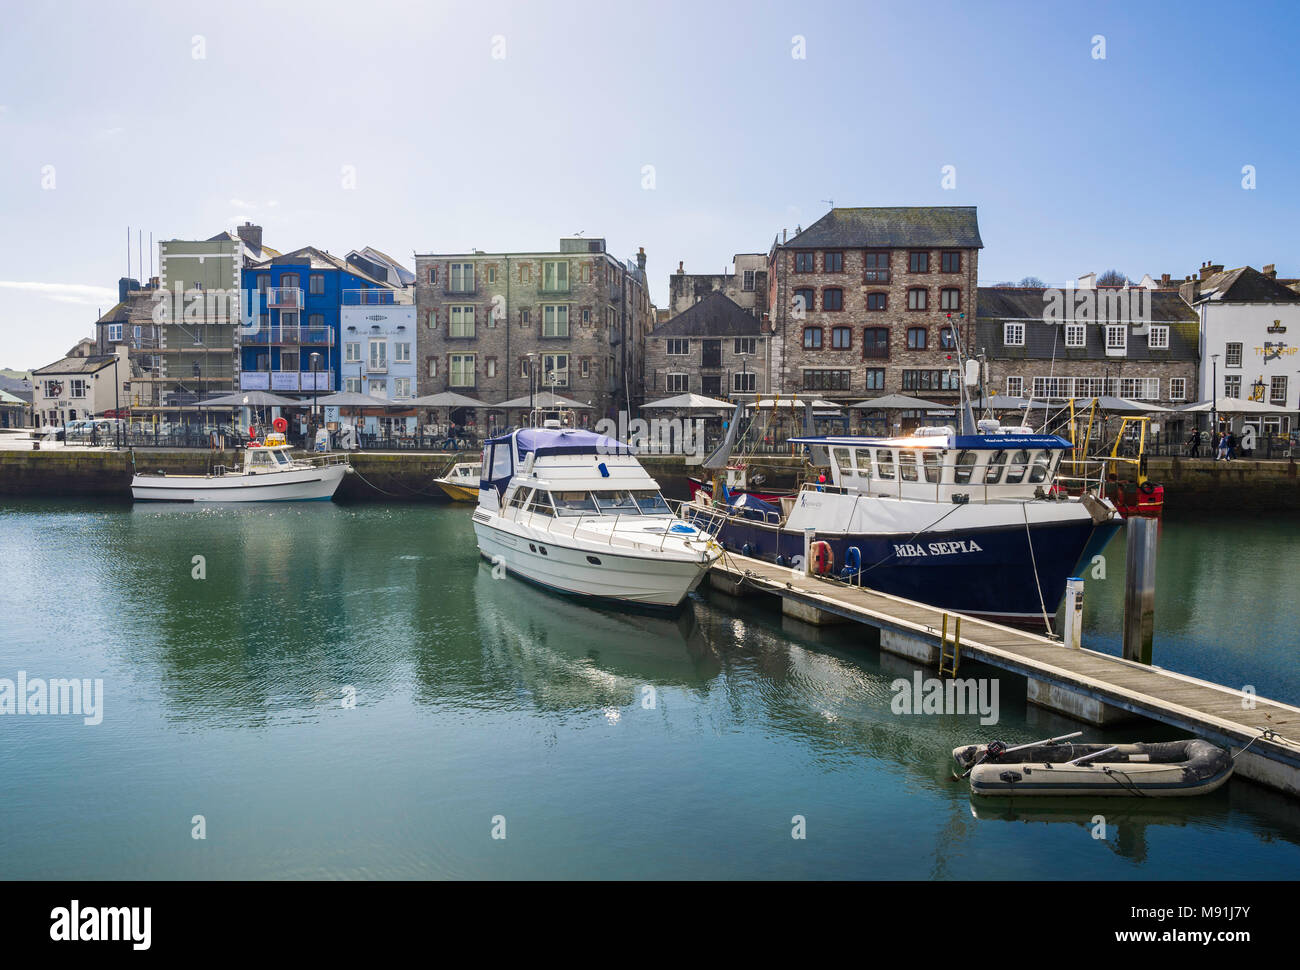 Boats moored in Sutton Harbour, with Quay Road beyond, Plymouth, UK. - Stock Image